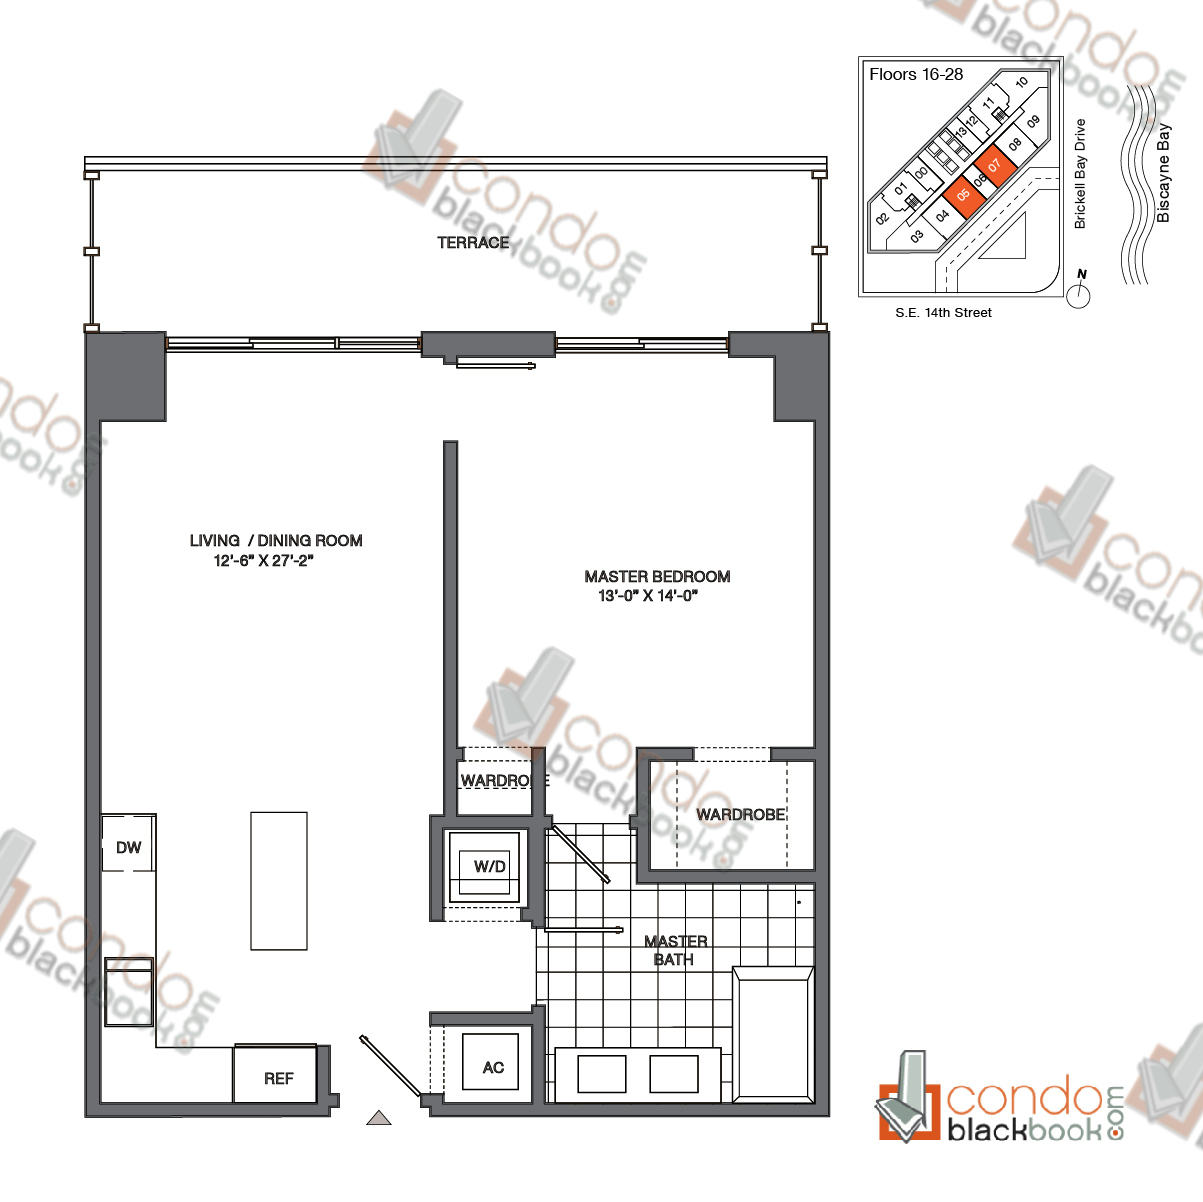 Floor plan for Brickell House Brickell Miami, model A7_16-28, line 05, 07, 1/1 bedrooms, 752 sq ft